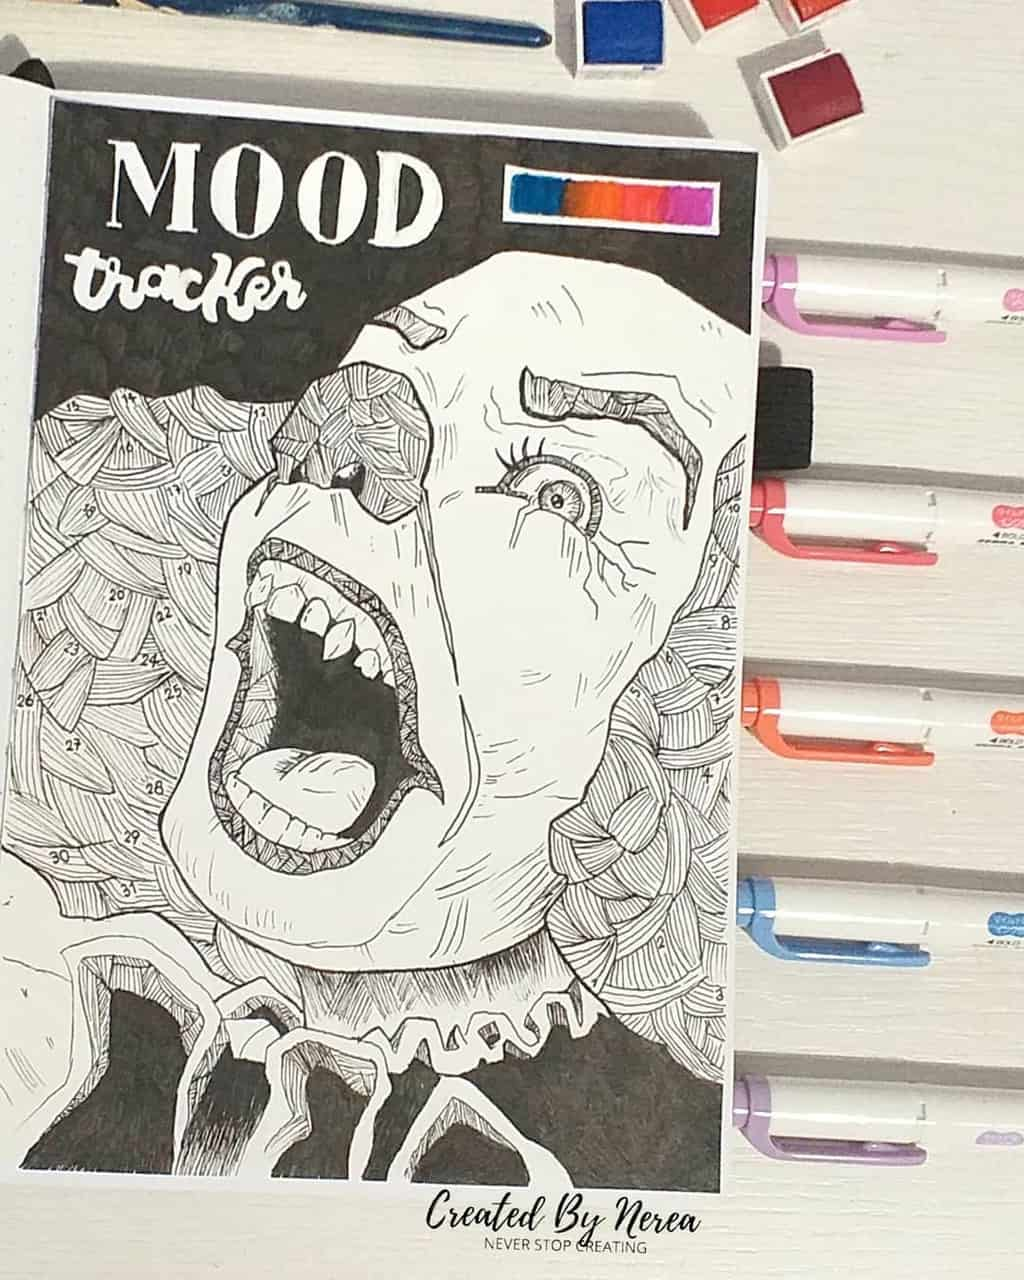 Halloween Bullet Journal Theme Inspirations - mood tracker by @created_by_nerea | Masha Plans